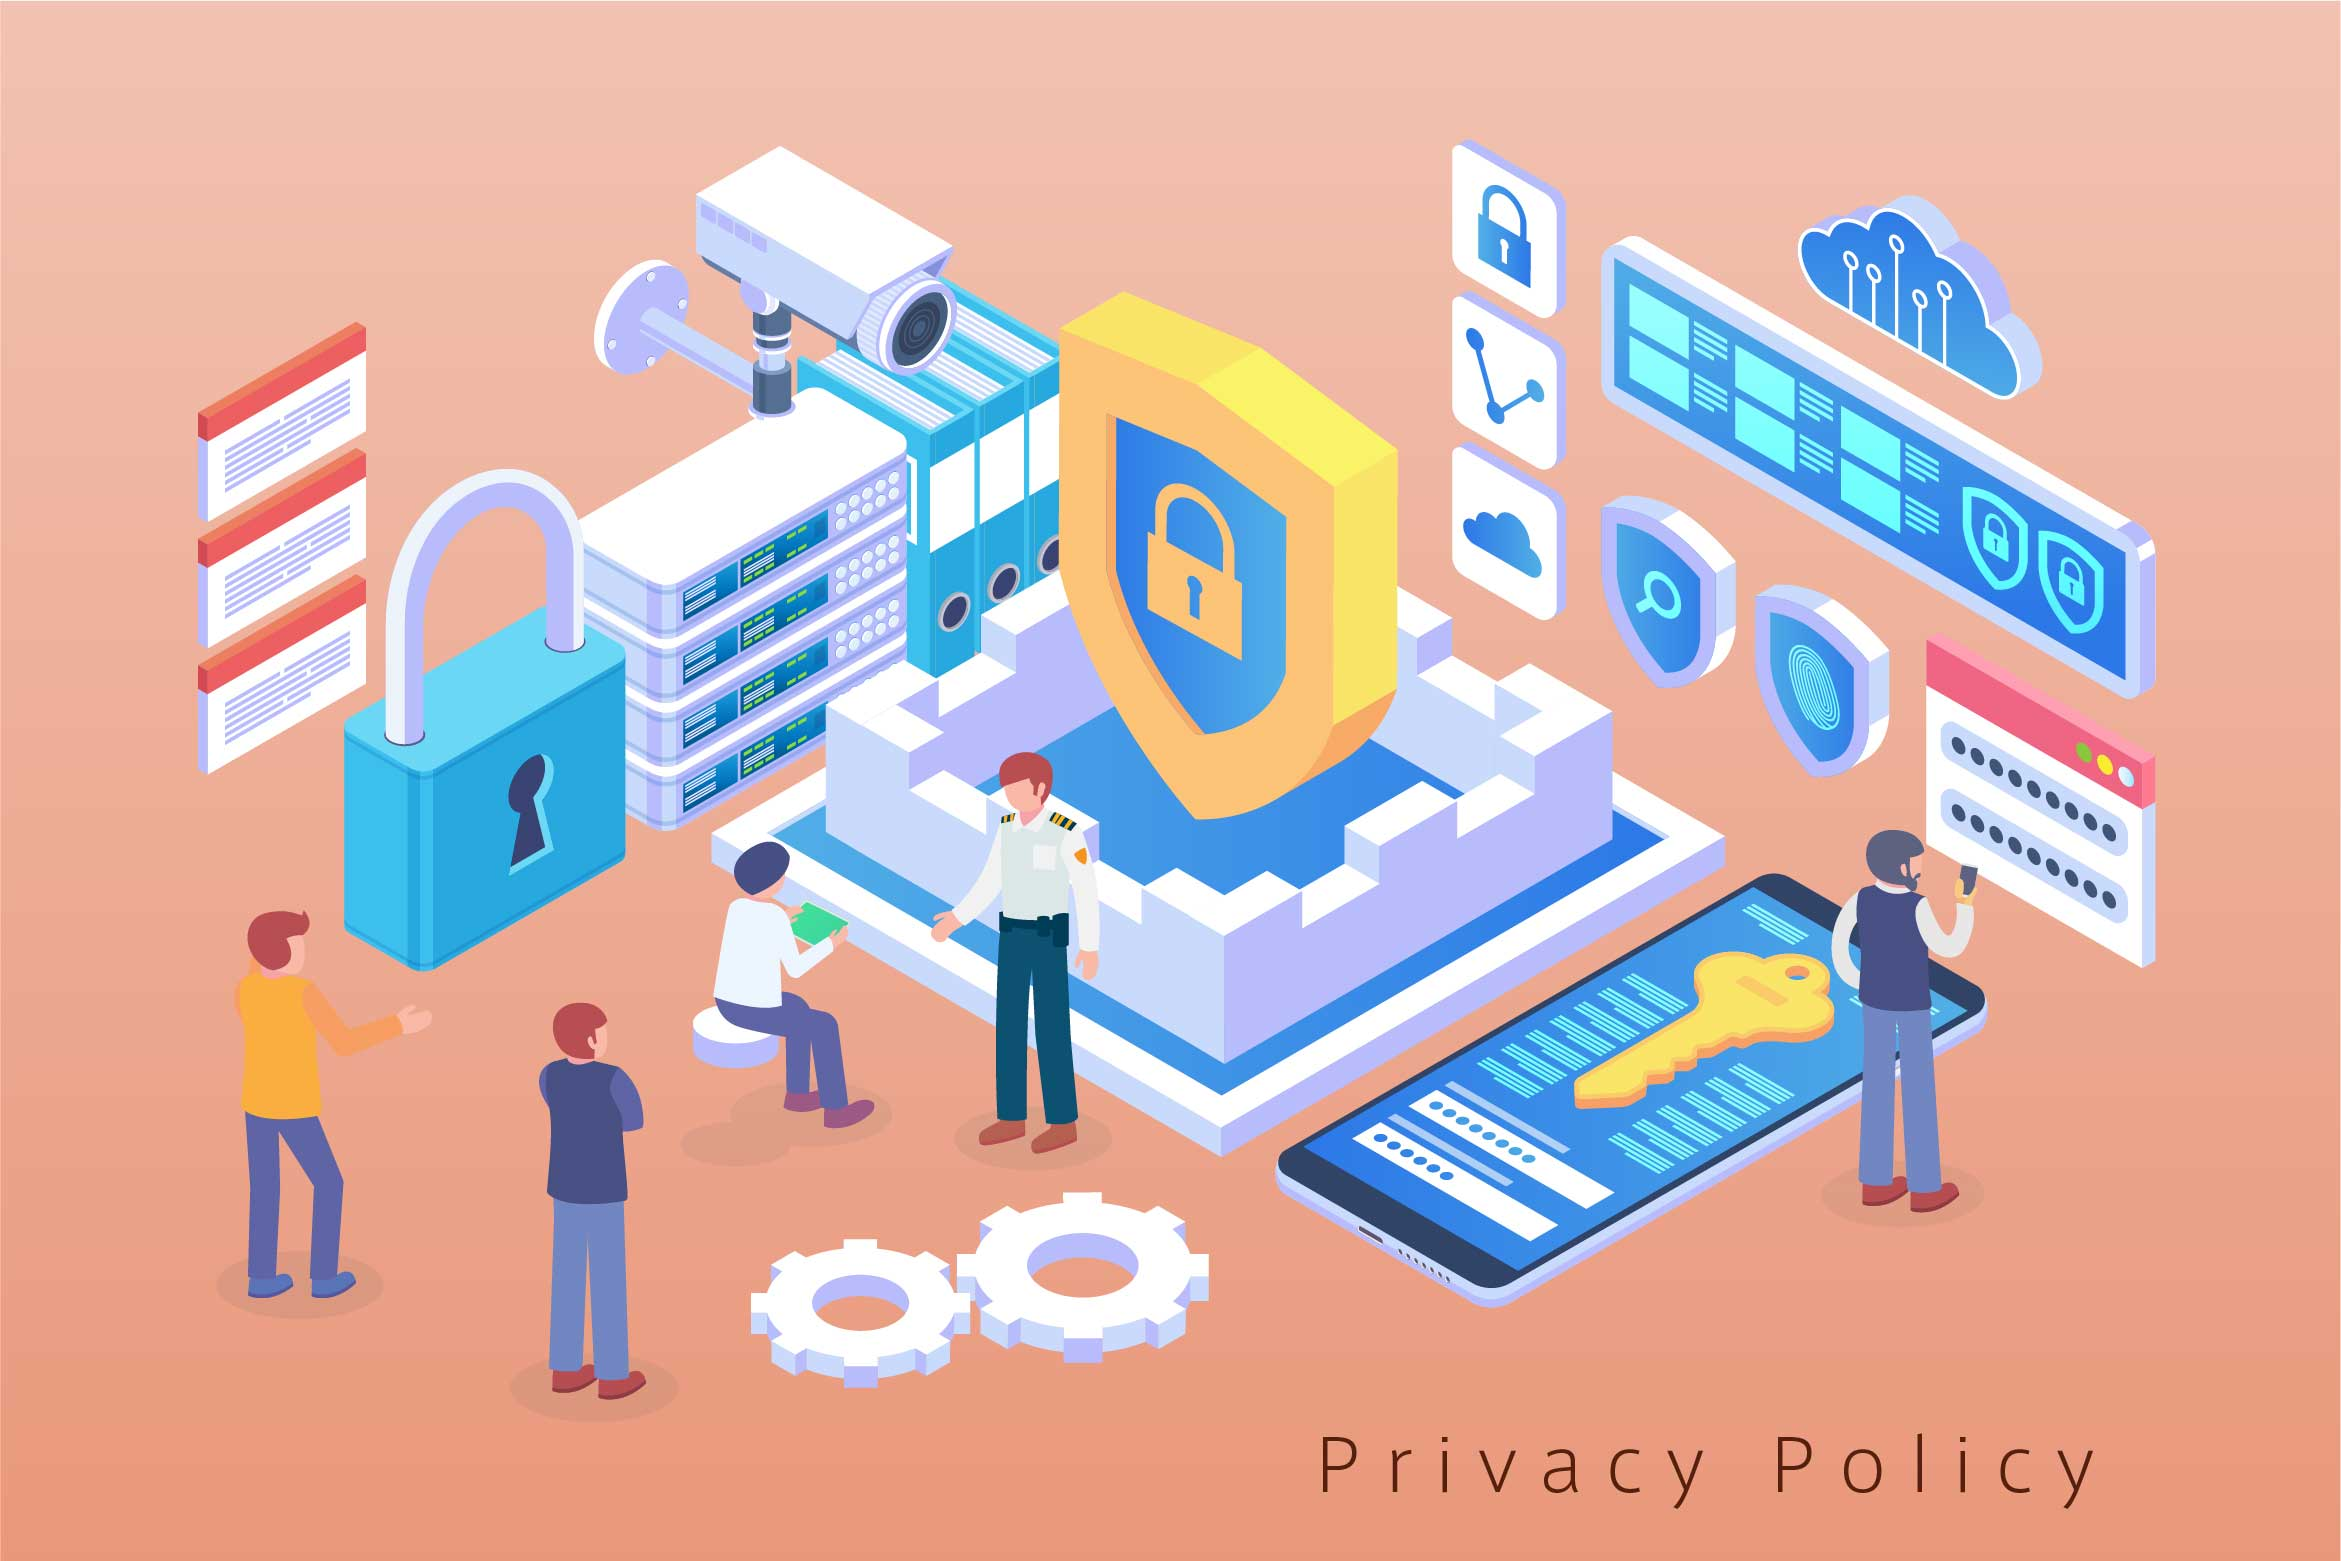 Do you need a privacy policy for your business or blog website